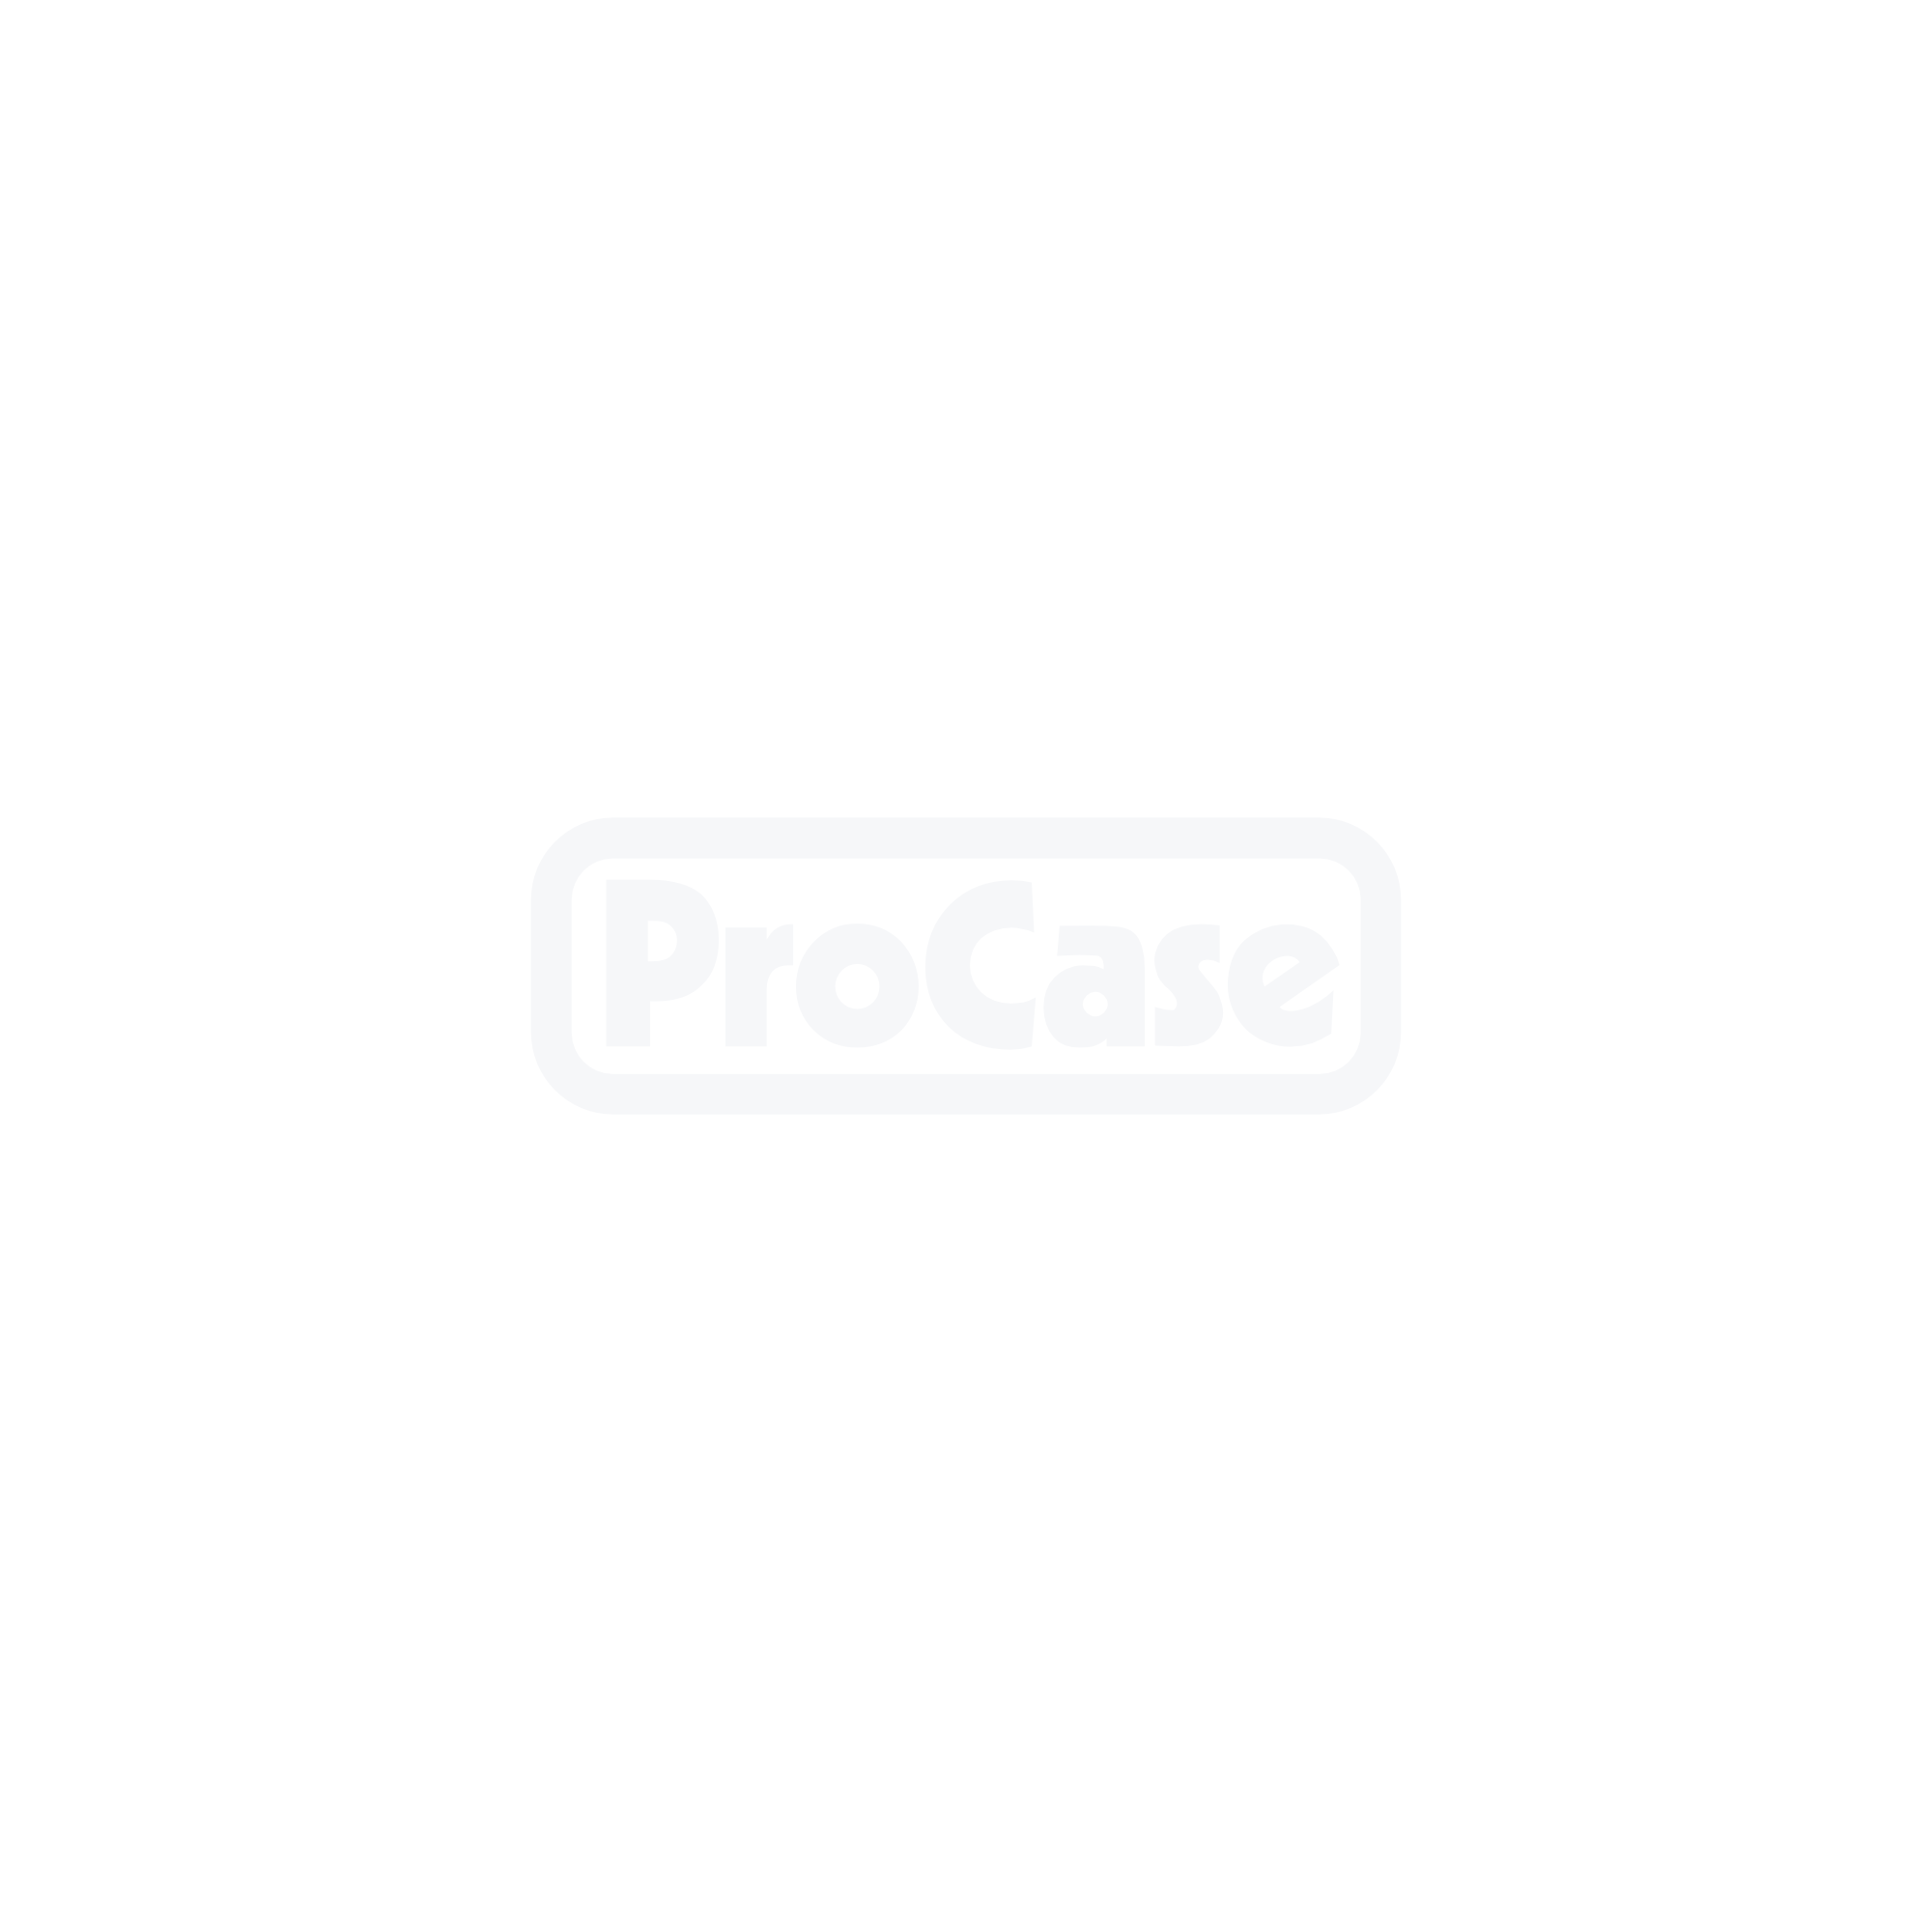 Shockwatch Transportkontrolle